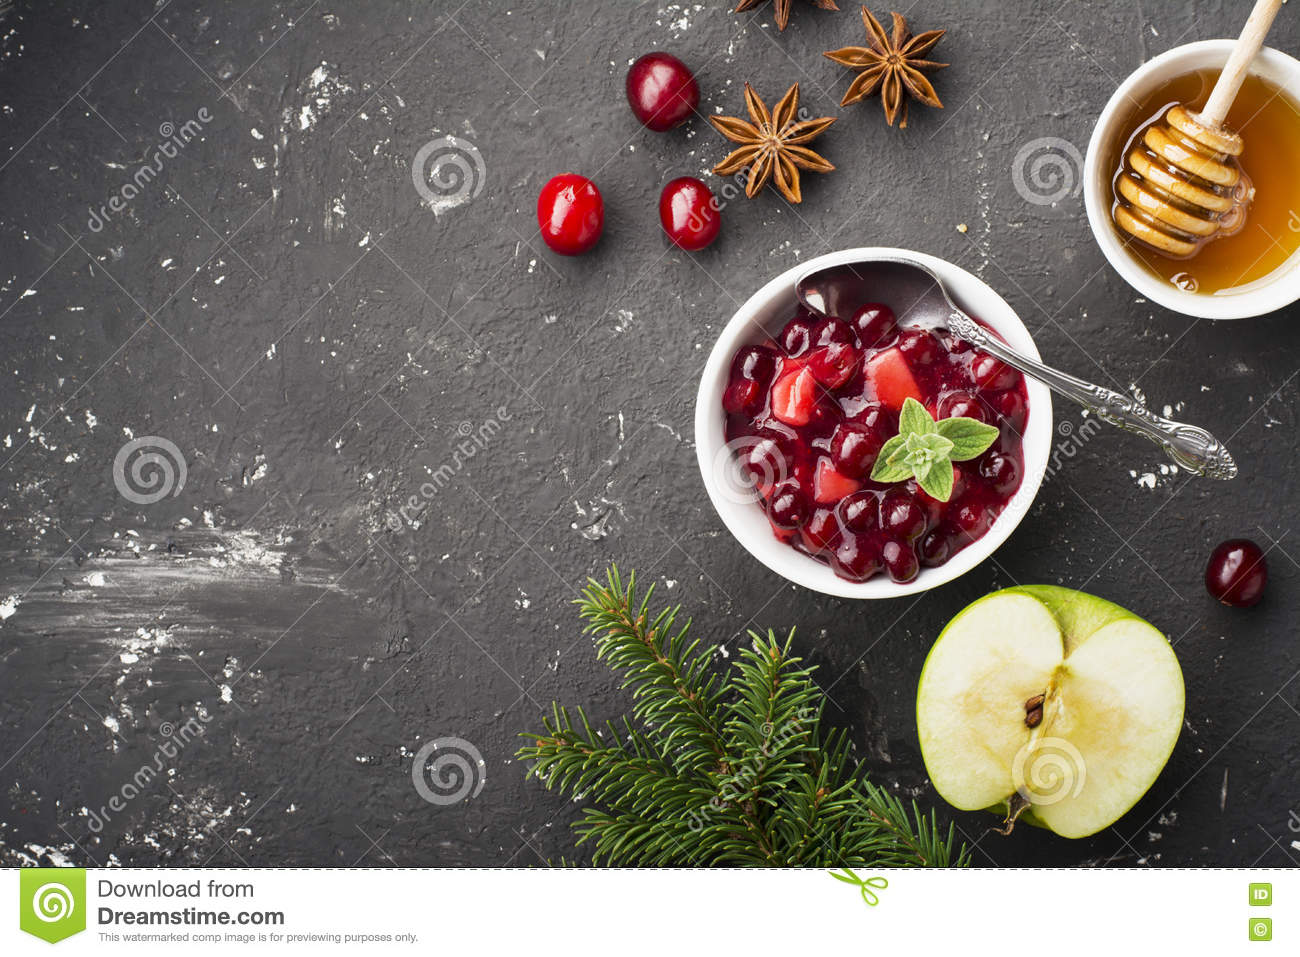 Home Relish sauce of apples and cranberries for submission to various dishes the family dinner. The concept the